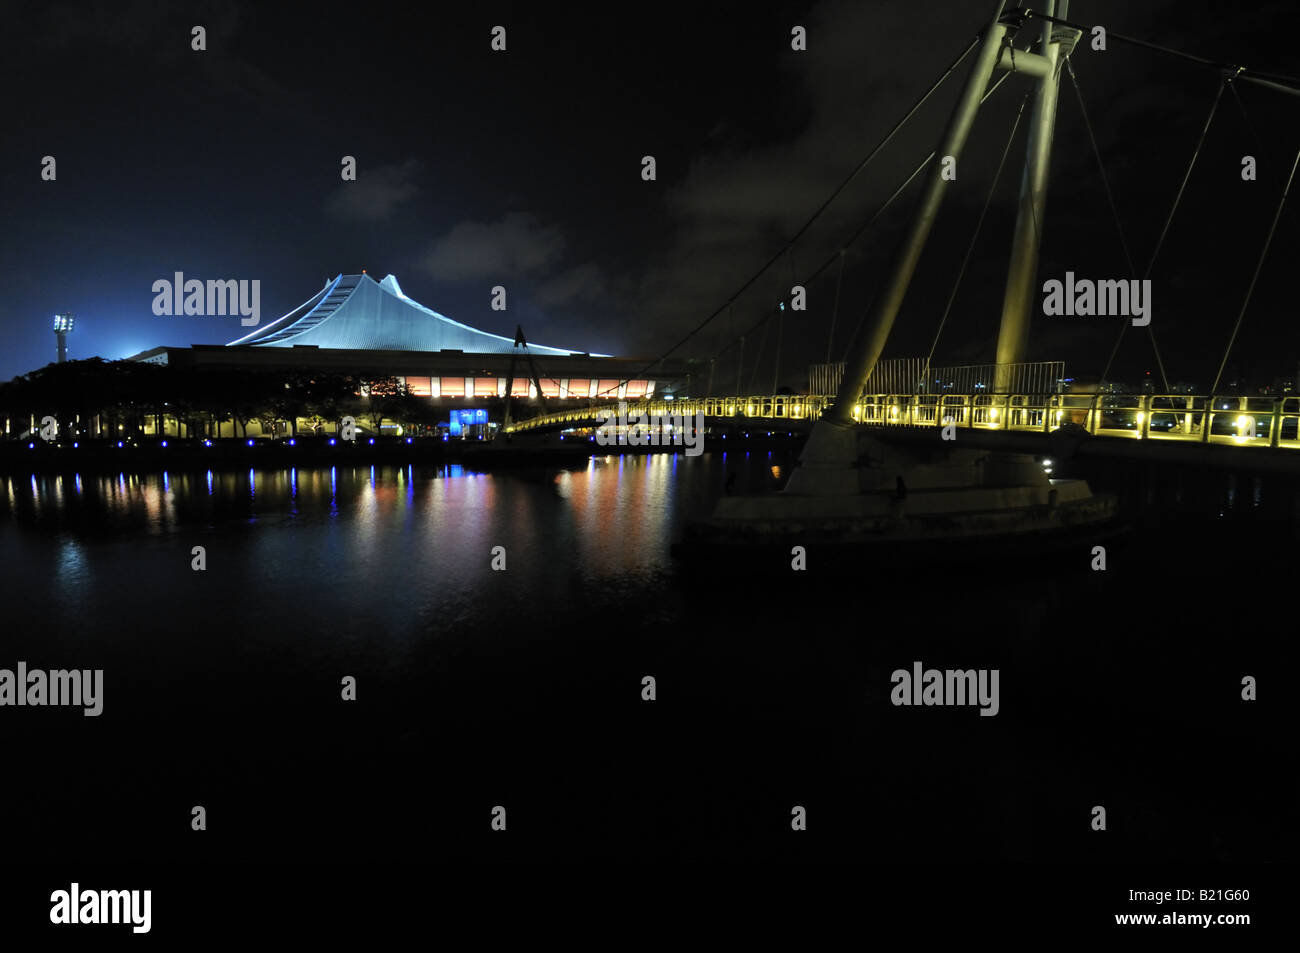 Singapore Indoor Stadium and bridge over Kallang river at night - Stock Image